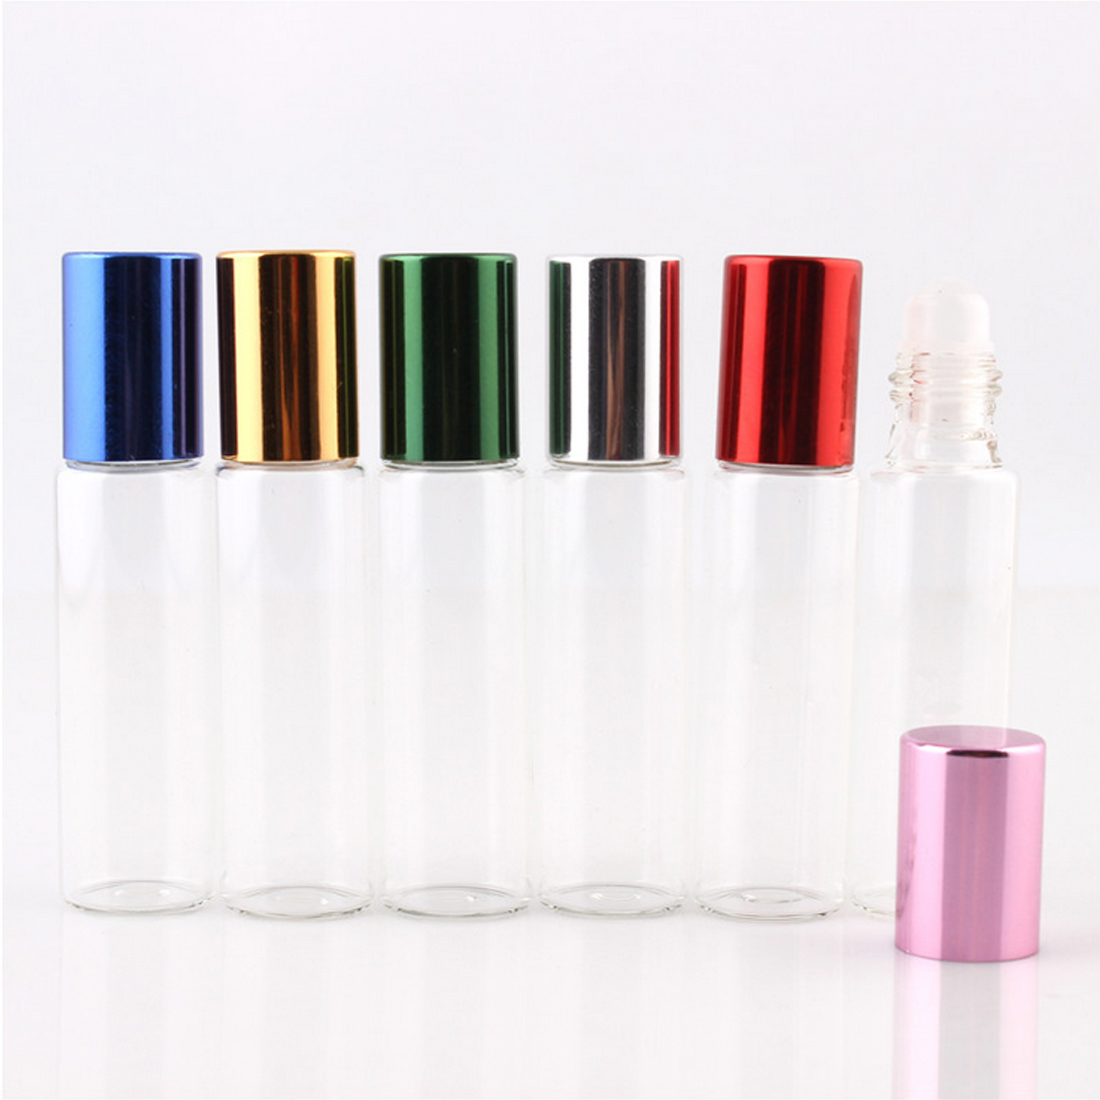 Transparent glass essential oil bottle 10ml mini glass ball bottle 6pcs glass beads perfume bottled travel supplies empty bottle in Refillable Bottles from Beauty Health